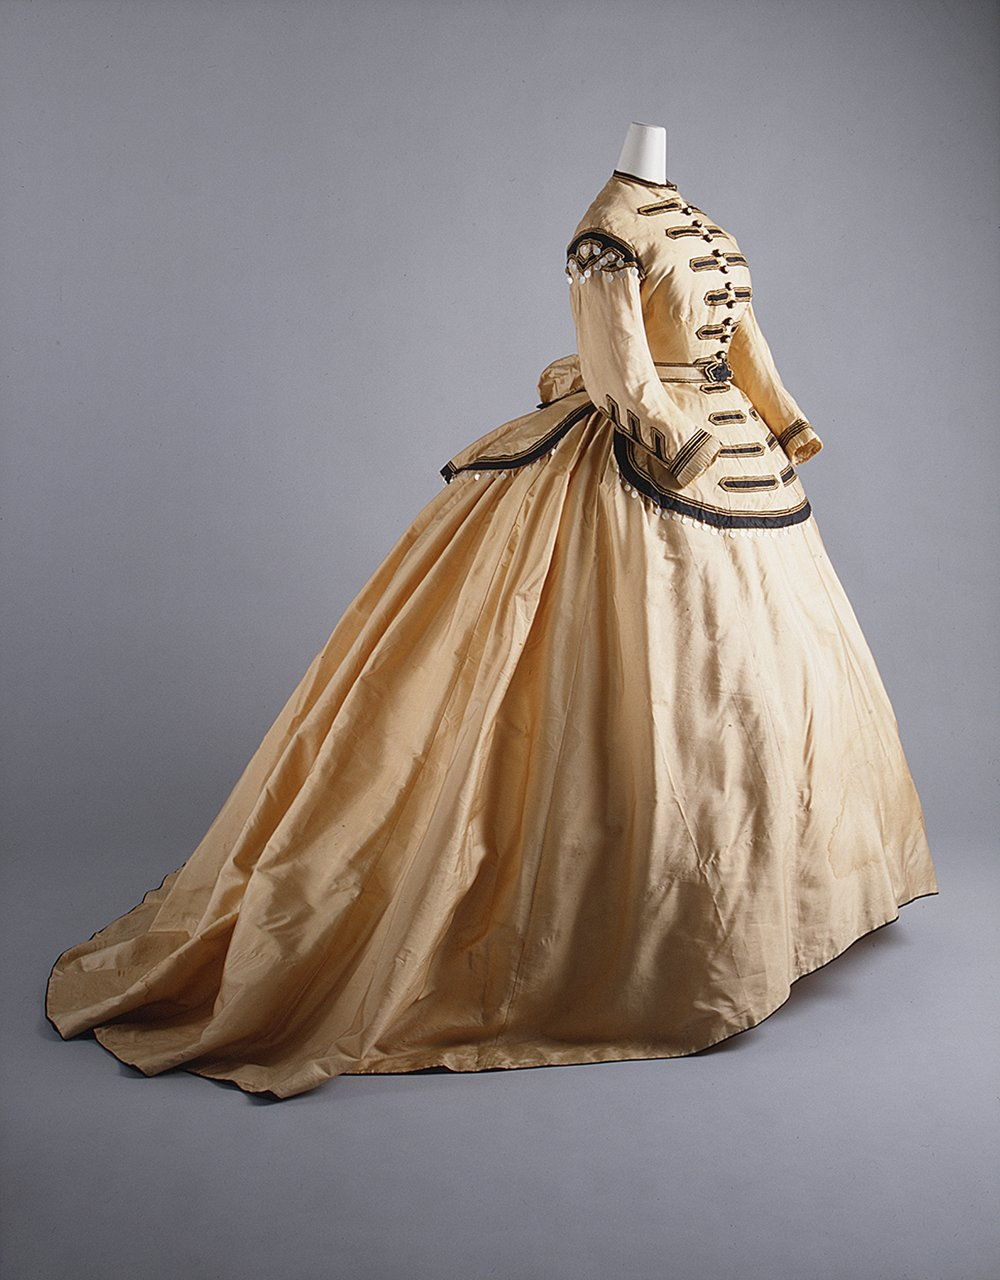 How many guns did one Kentucky girl smuggle under her skirts? 200 over the course of two weeks. A 19th-century woman's cumbersome clothing was often her best spying accessory. - Courtesy of the Metropolitan Museum of Art.